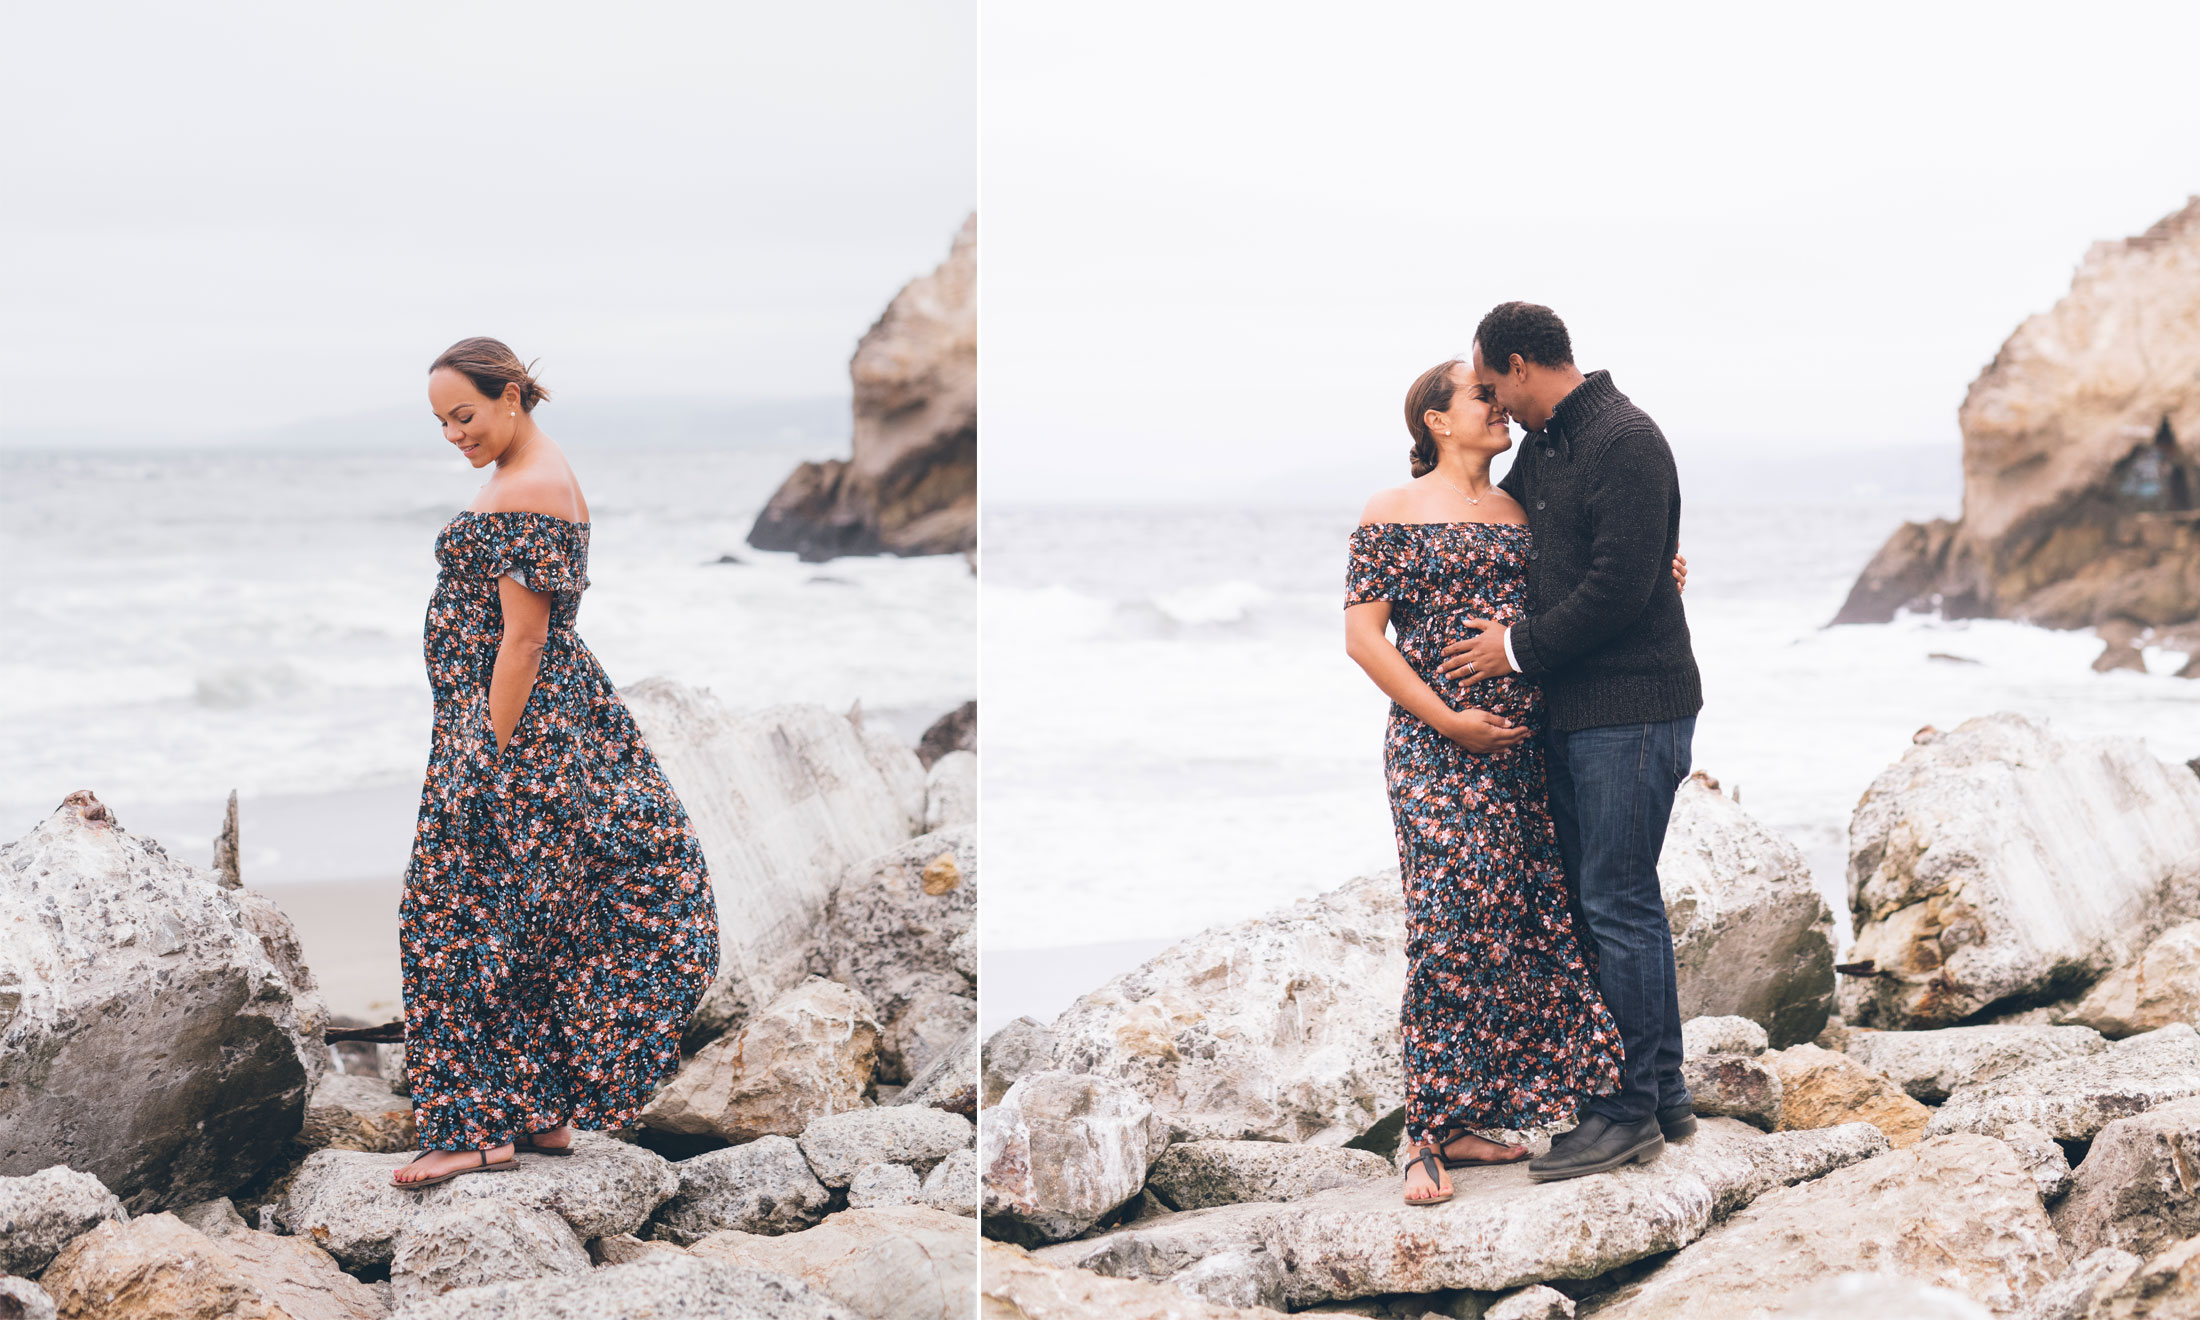 sutro-baths-rock-beach-san-francisco-maternity-photographer.jpg